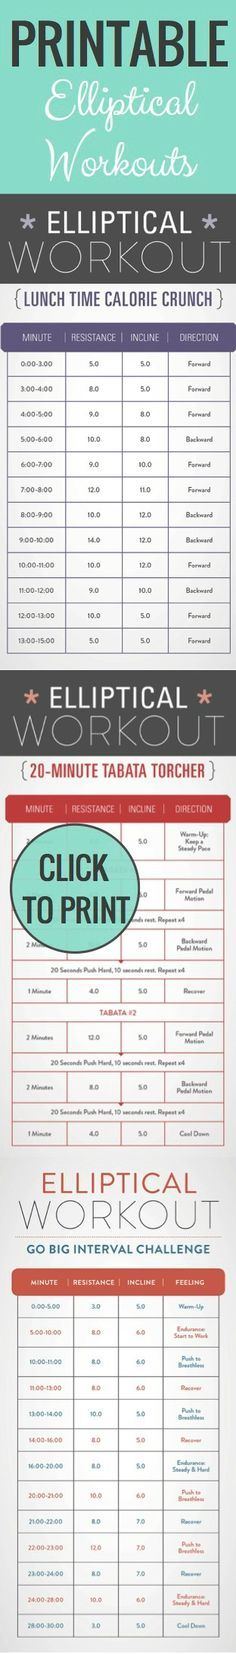 Many people want to get more fit but just don't think it is too hard to do. Use the information here and it can help you figure out what it takes to start getting fit today. Do you lack a lot of time for working out? Split up your exercise time into two halves. Instead of jogging for an hour, do a half hour early in the day ad the other half later. If a person is used to exercising on a... FULL ARTICLE @ http://fatlosstipsforwomen.com/2016/01/19/you-can-get-in-the-best-shape-of-your-life/